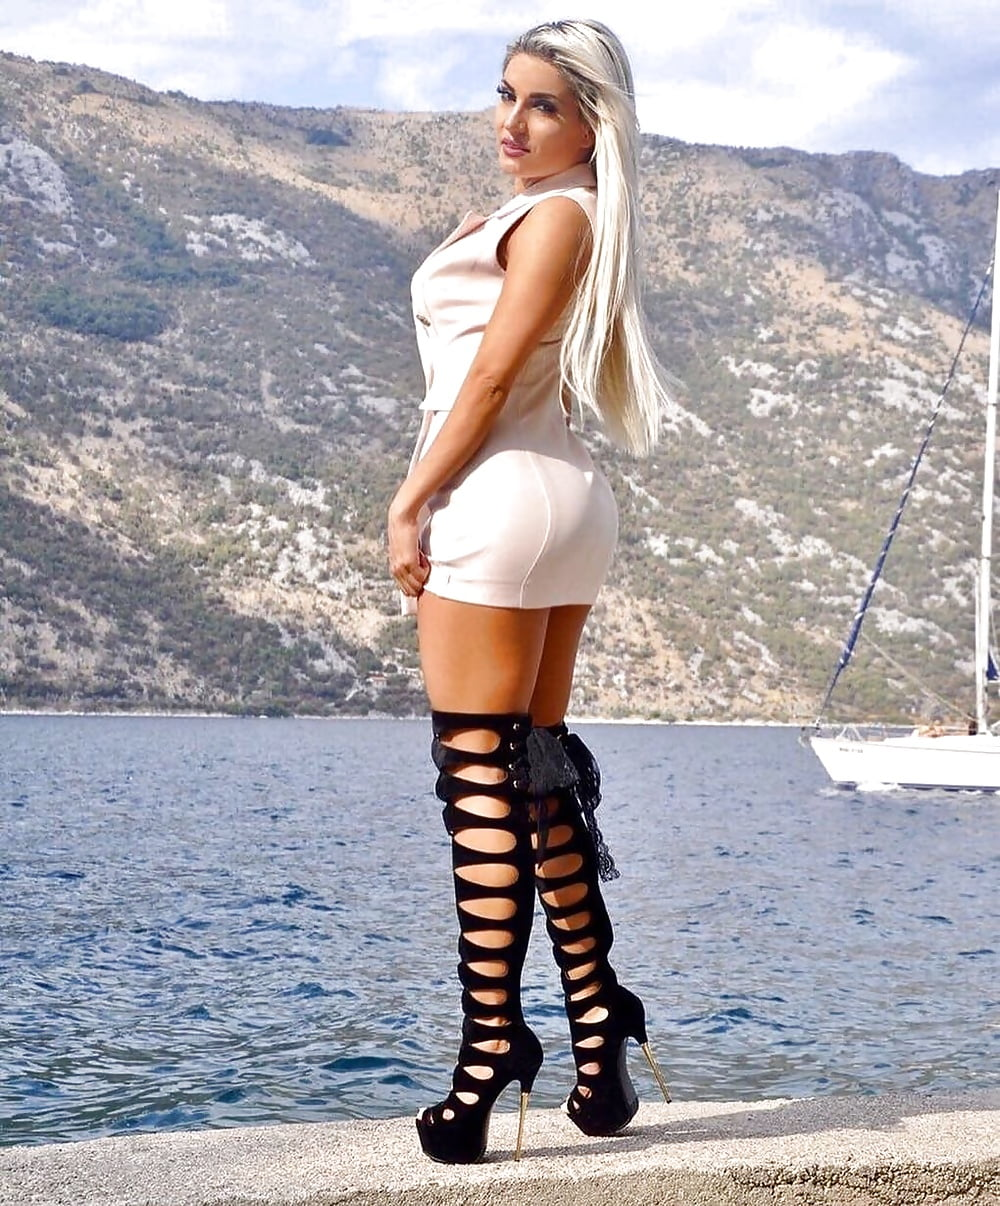 Serbian sexy politician vanja hadzovic's become big scandal in serbia, photos